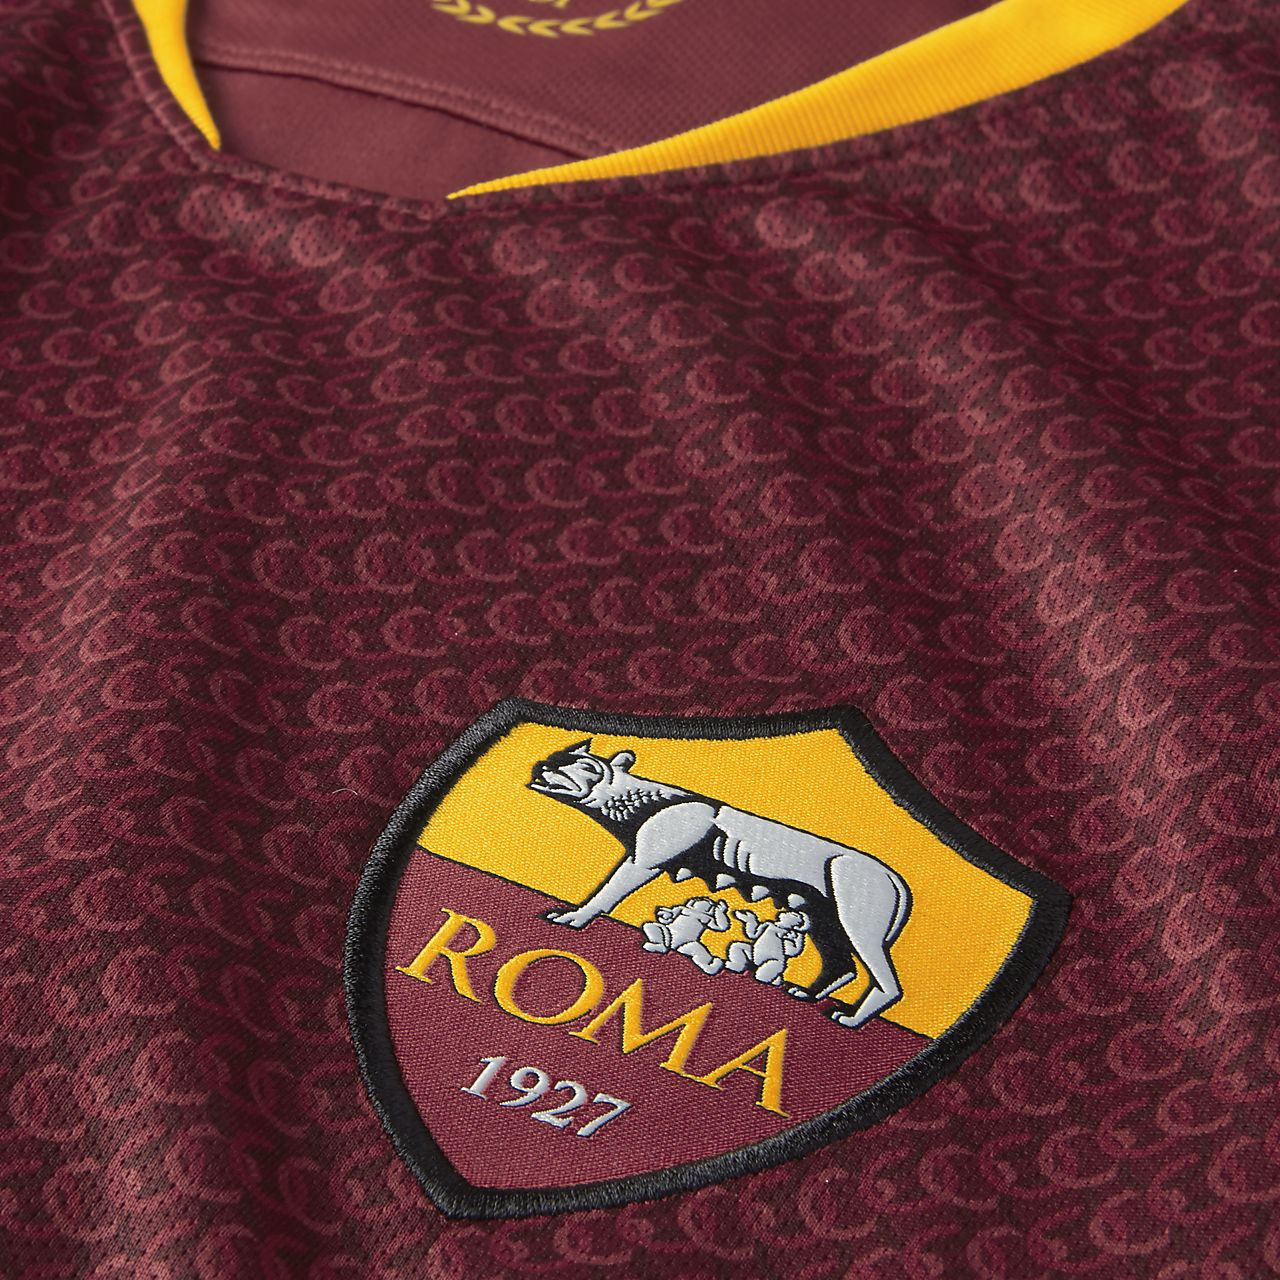 2c5a6f65a4b 2018/19 A.S. Roma Stadium Home Men's Football Shirt. Nike.com NO